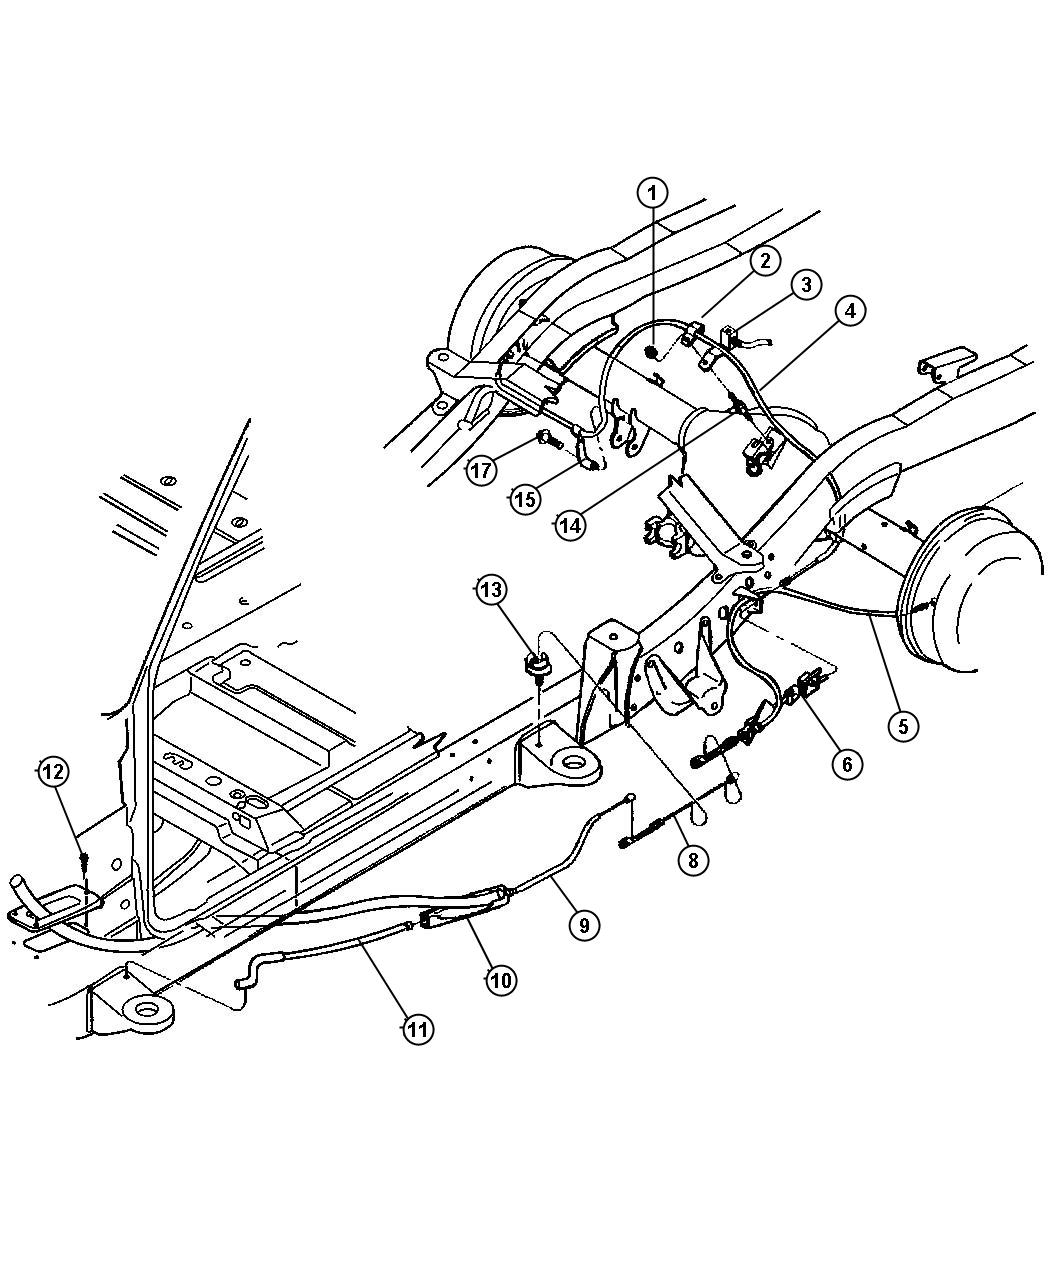 Dodge Dakota Front Disc Brake Diagram on Mercury Tracer Engine